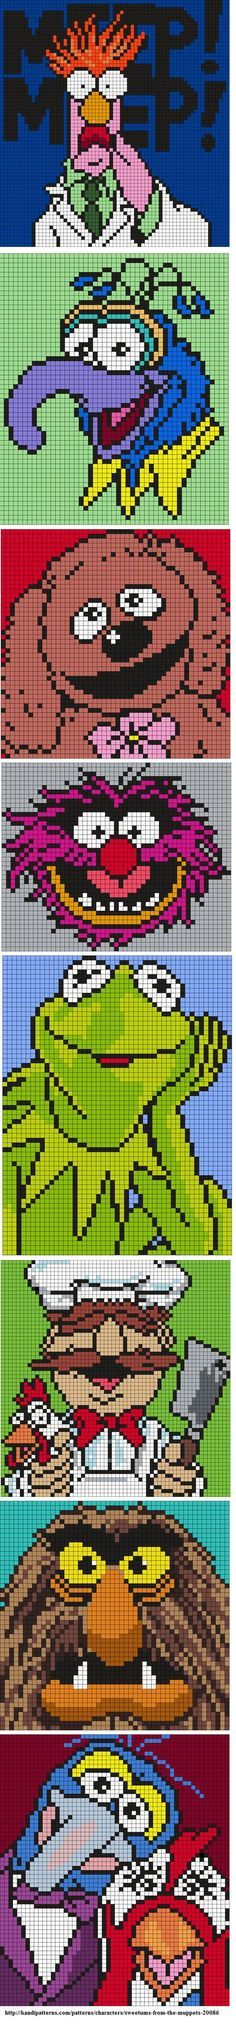 The Muppets: KERMIT